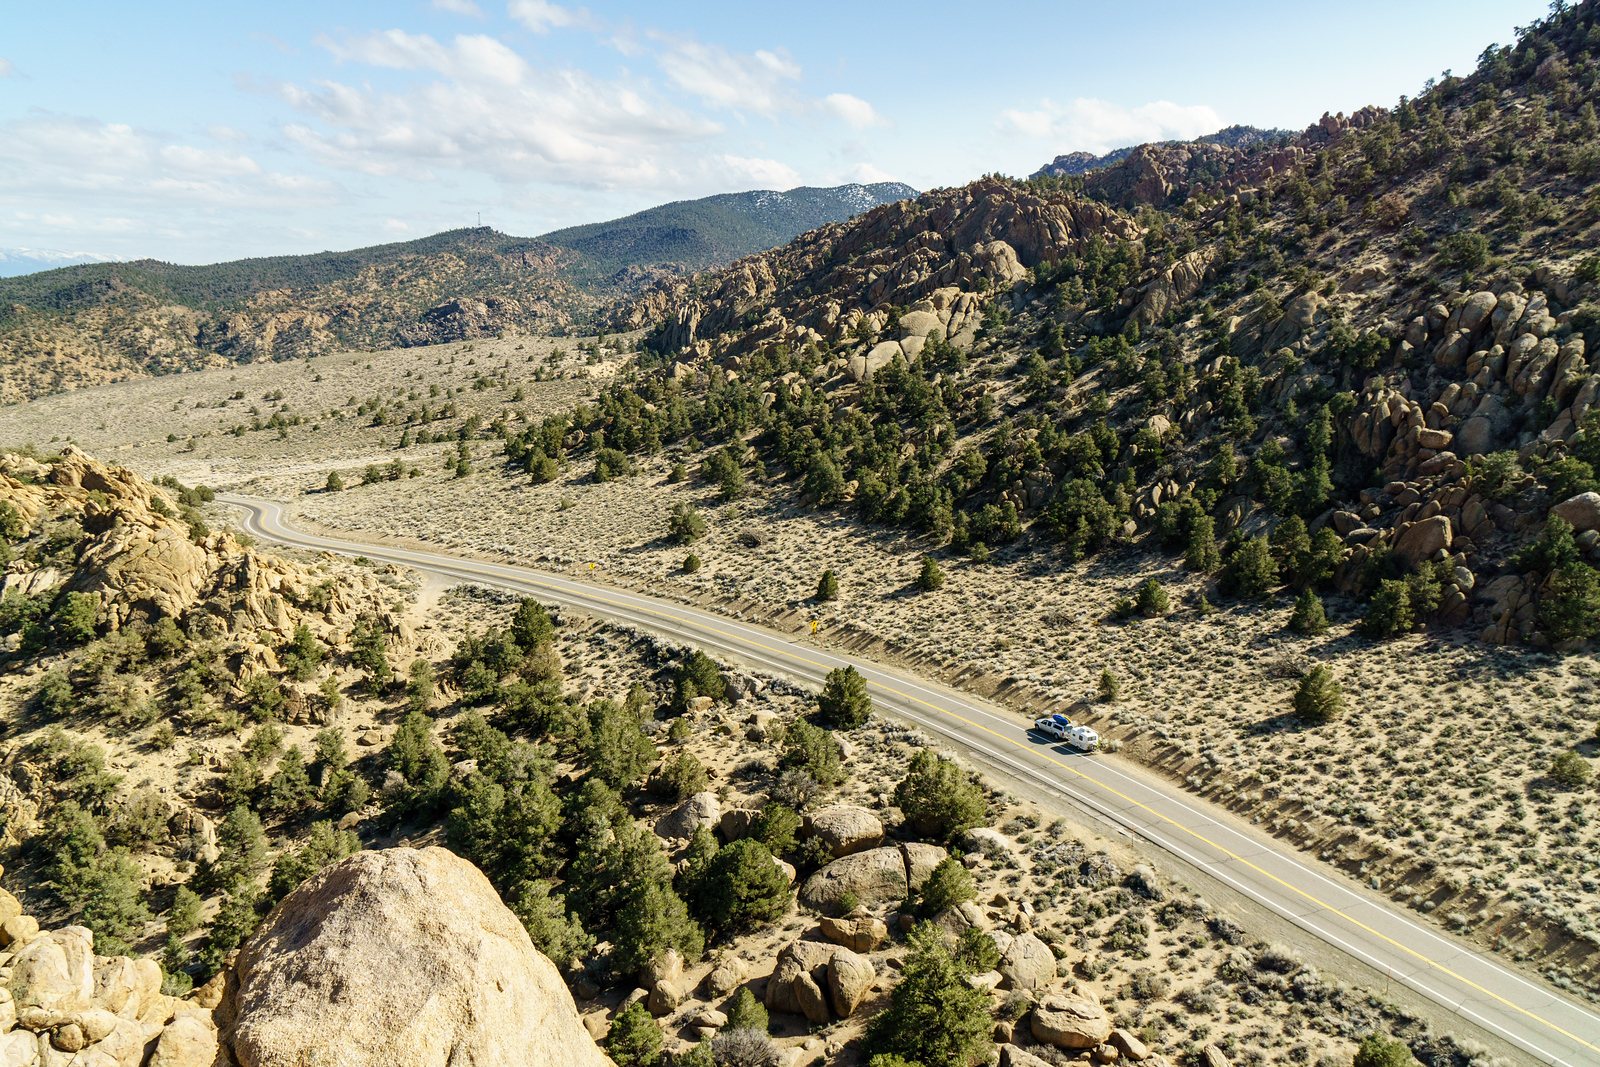 Life on the road; near the California / Nevada border in the Eastern Sierras.